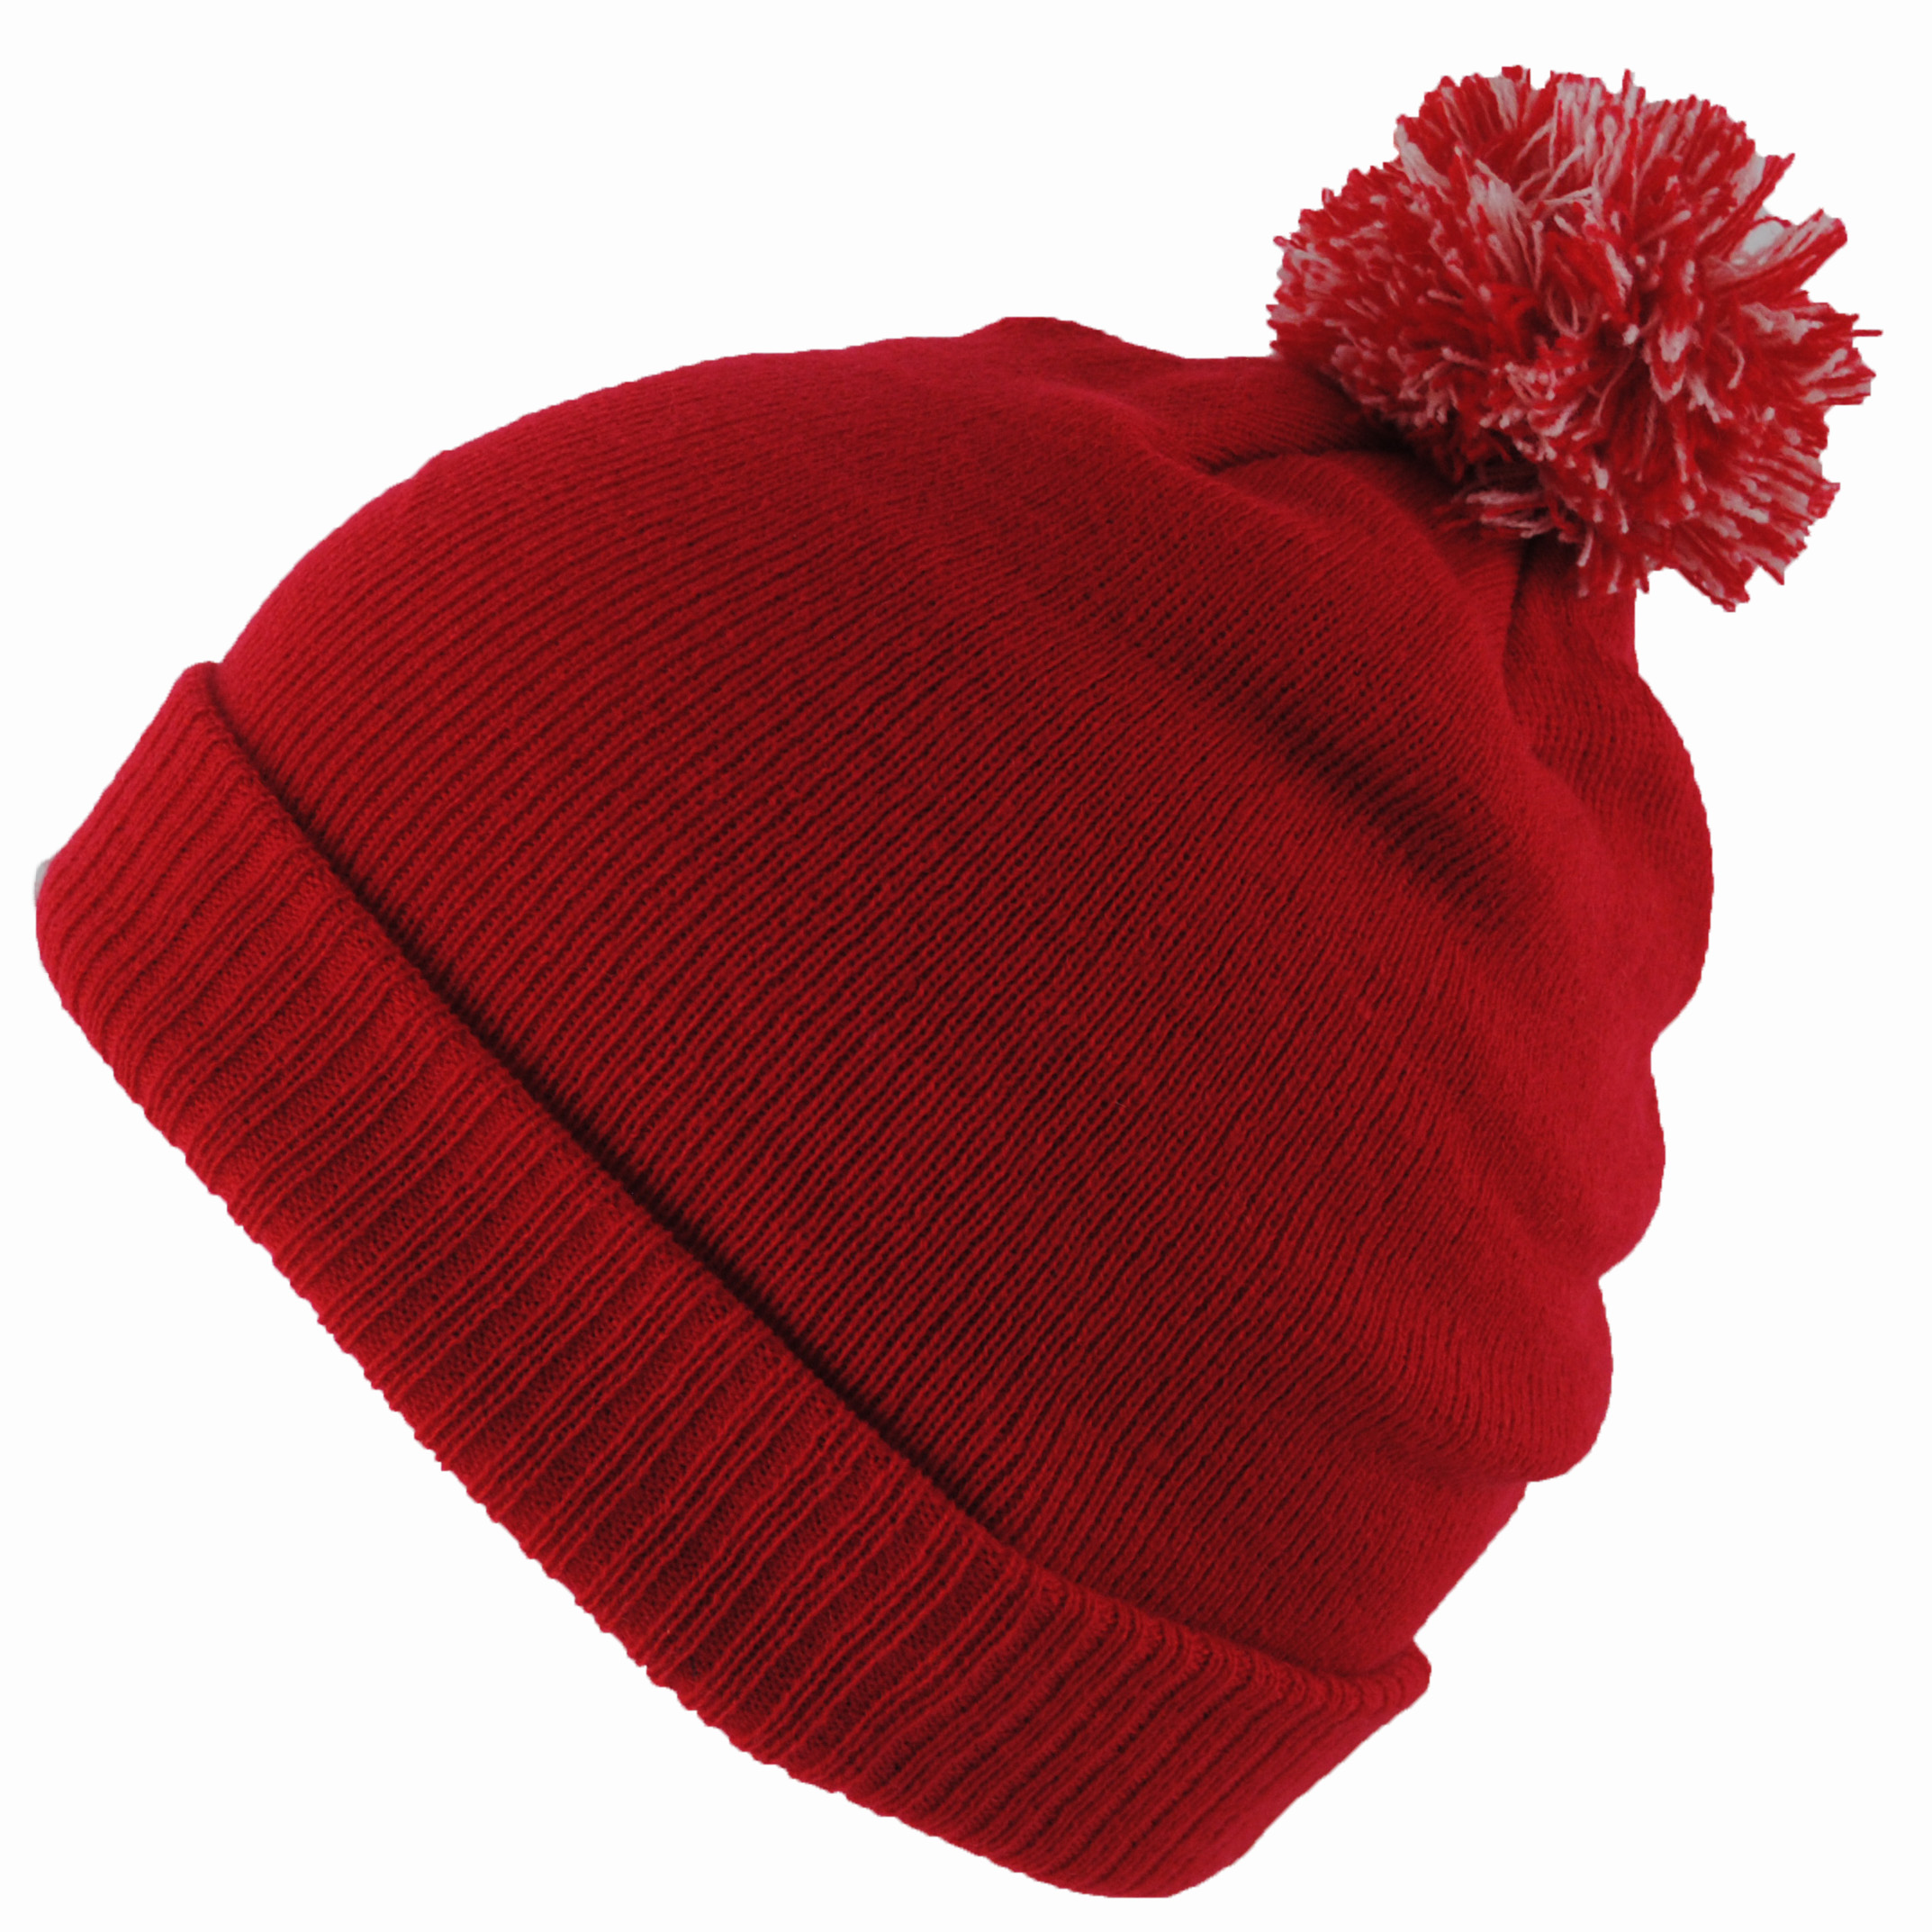 BNWT Junior Kids Knitted Green Navy Red Winter Wooly Roll ...